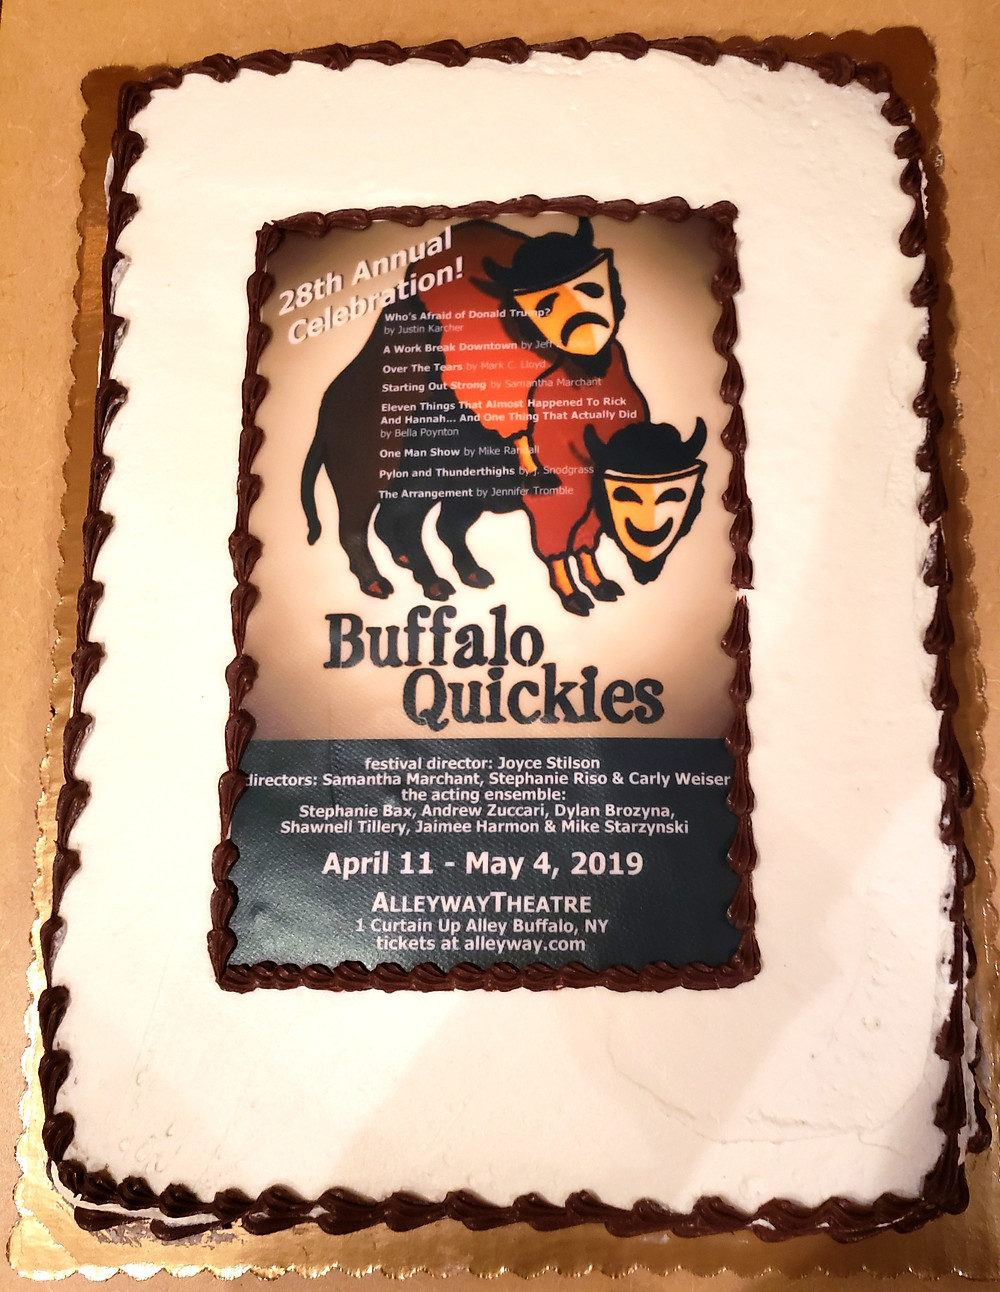 The Buffalo Quickies 2019 Cake at Alleyway Theatre